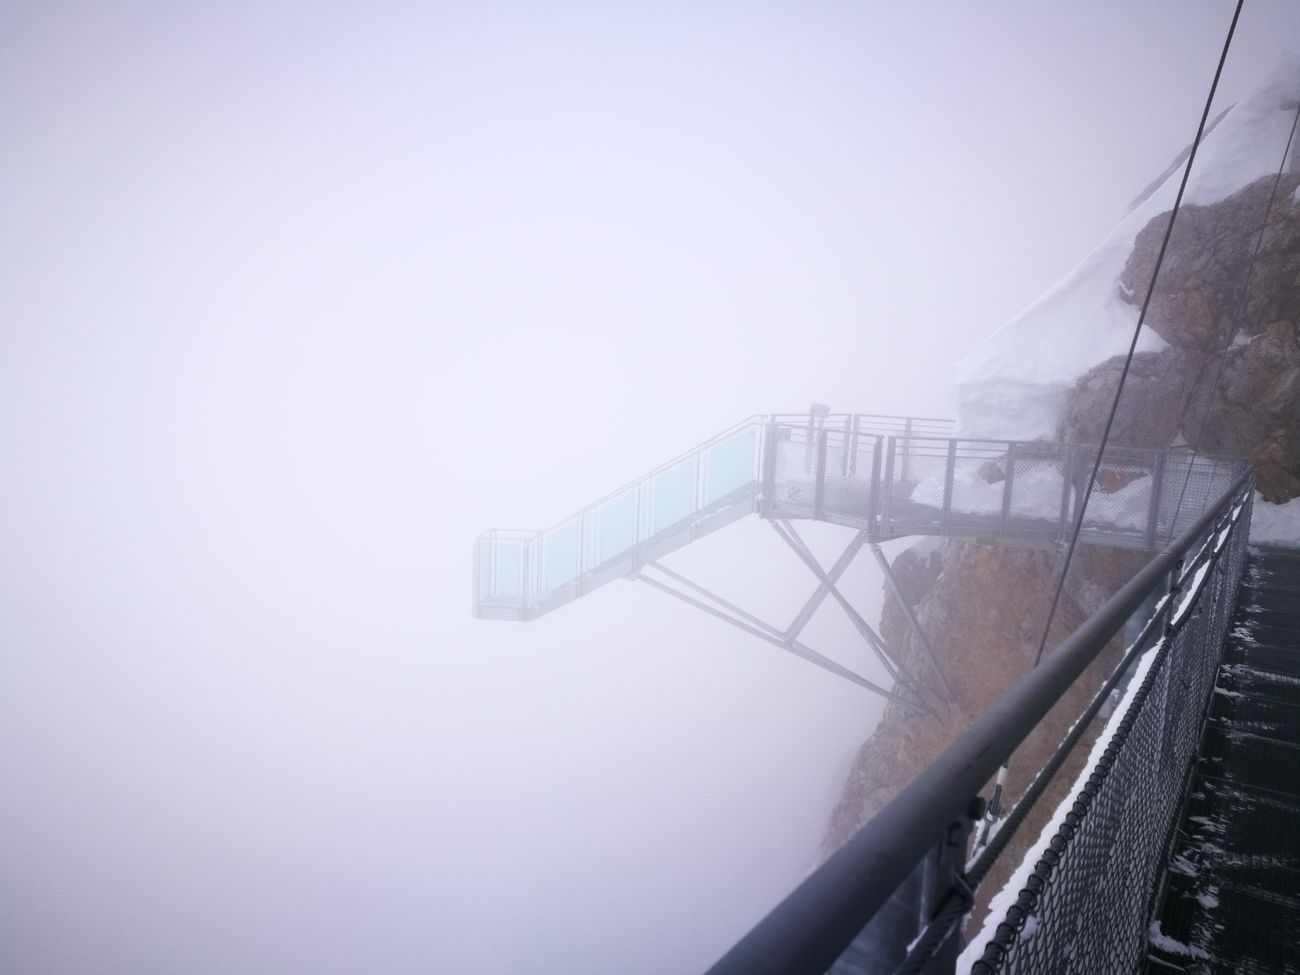 Built Structure Fog Outdoors Sky Bridge - Man Made Structure No People Day Dachstein Nature Mountain Cold Temperature Winter Snow